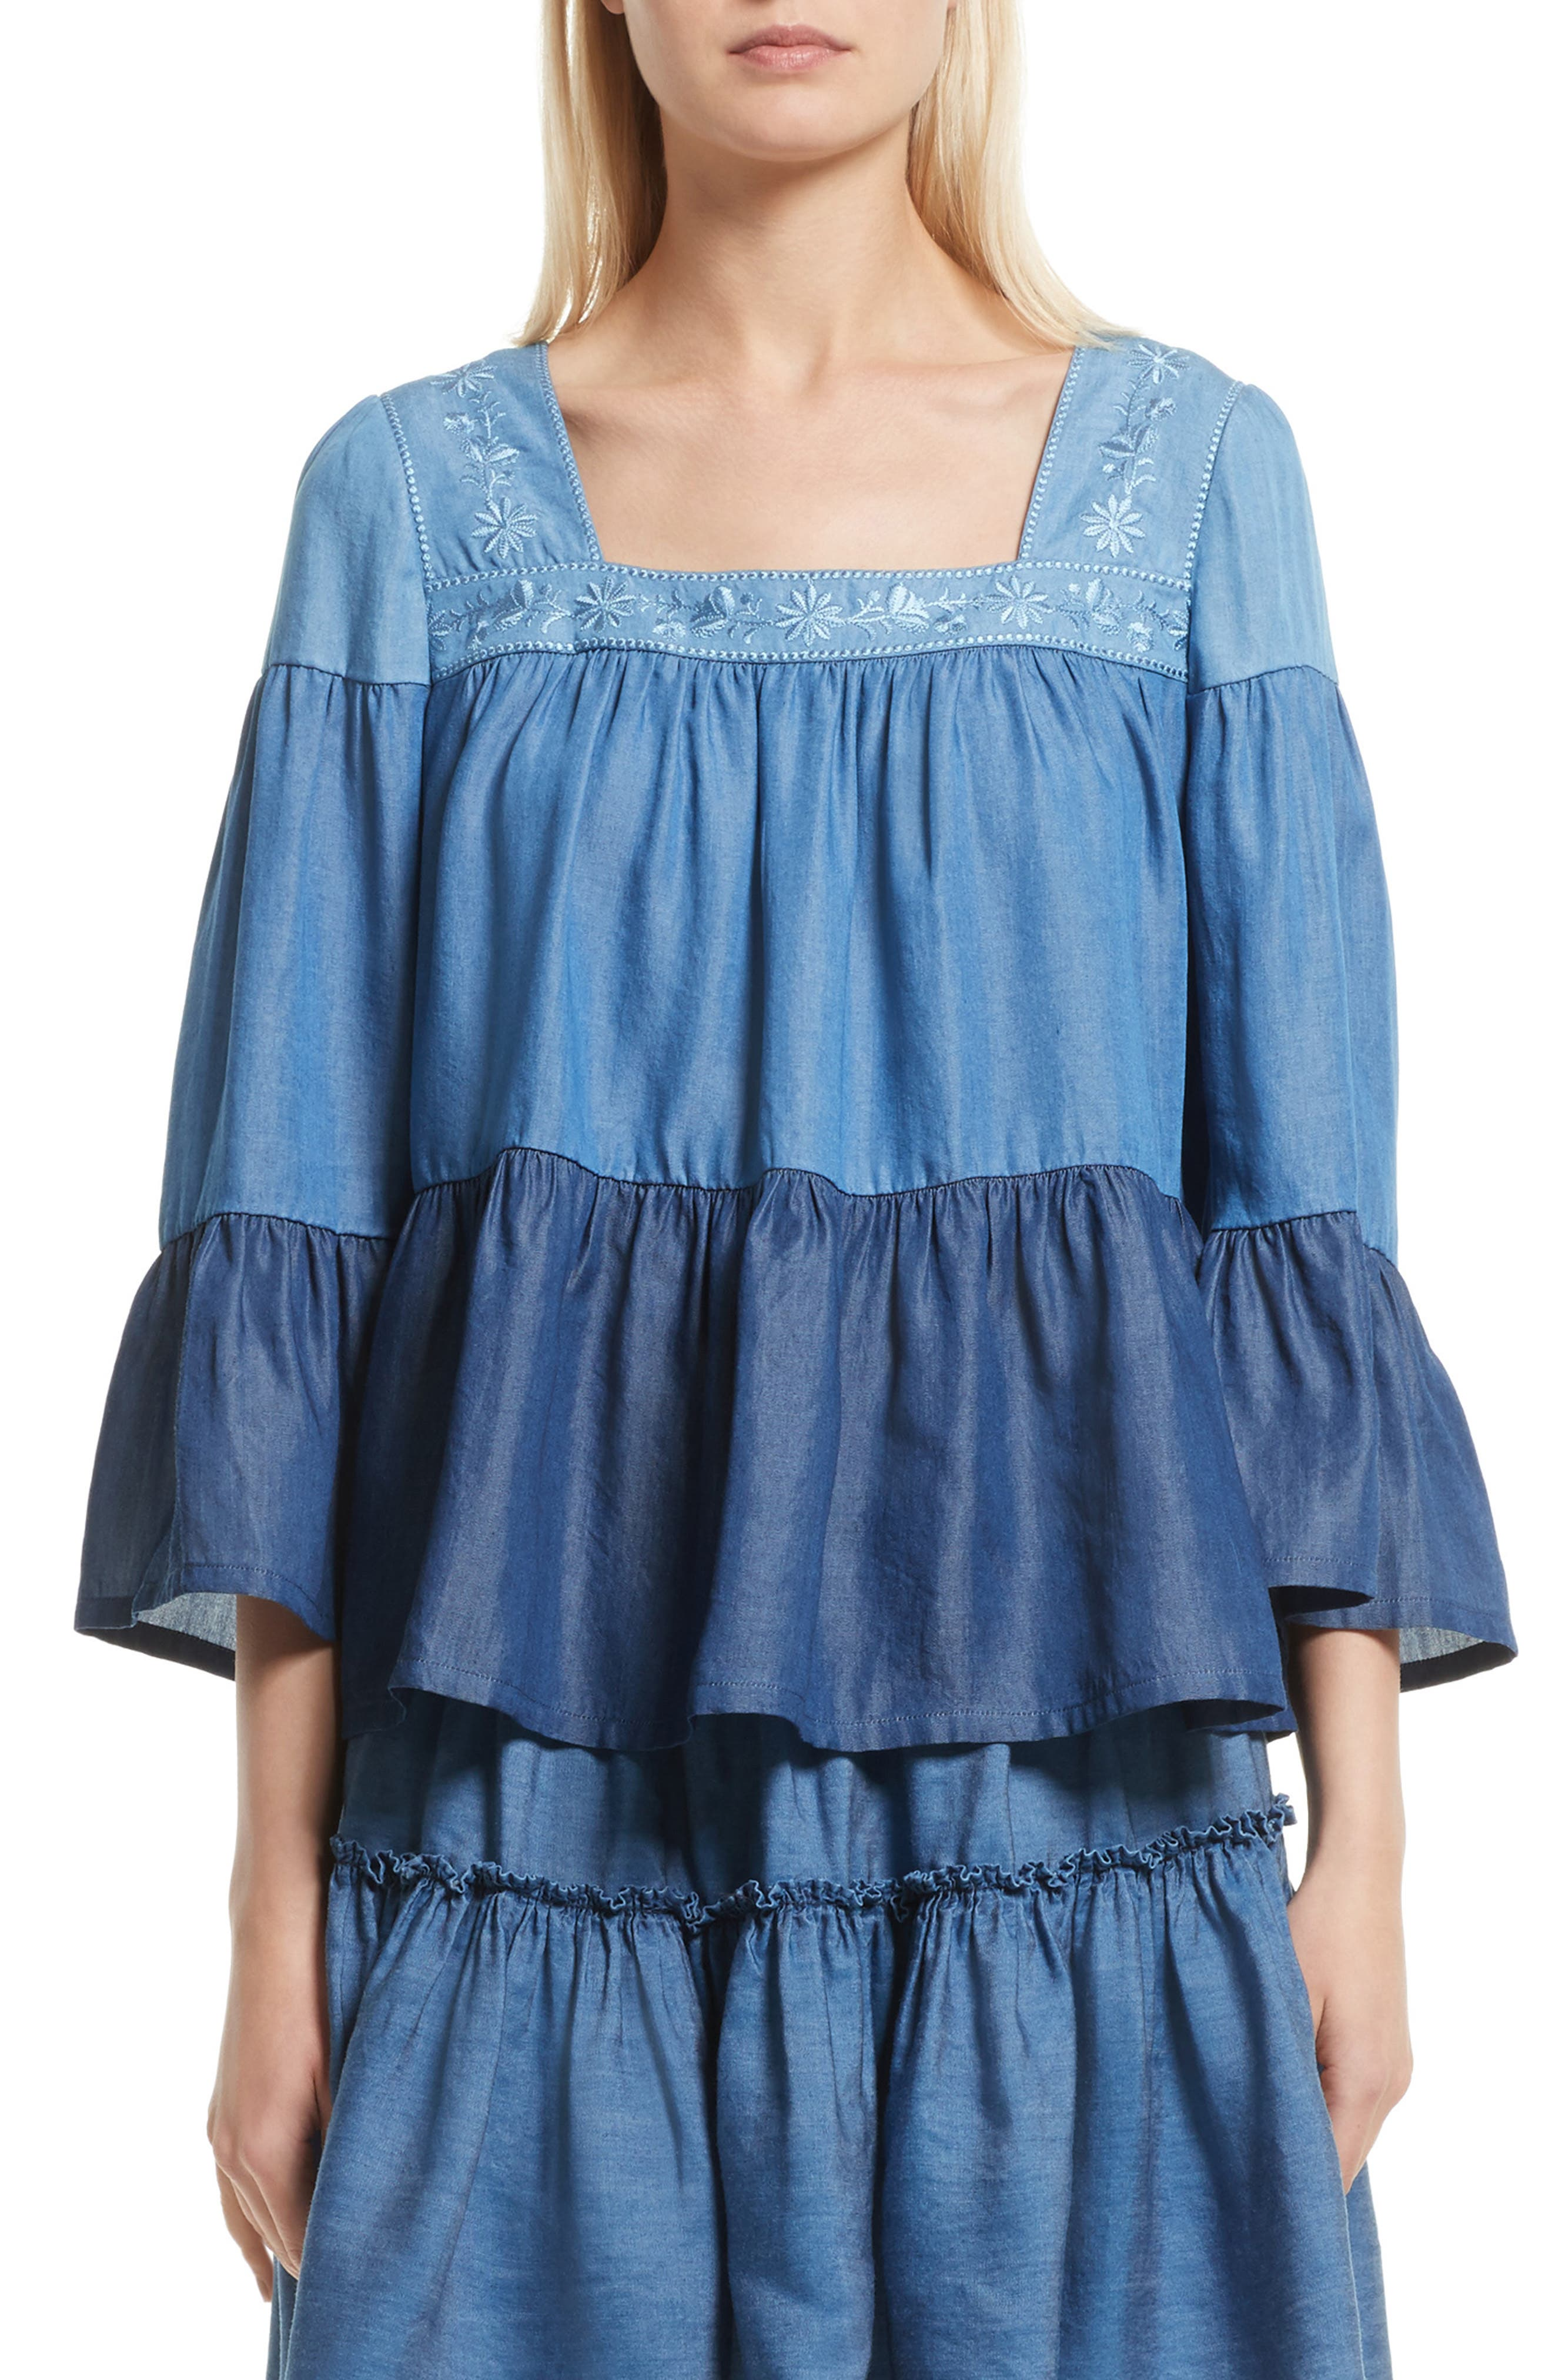 kate spade new york embroidered chambray top